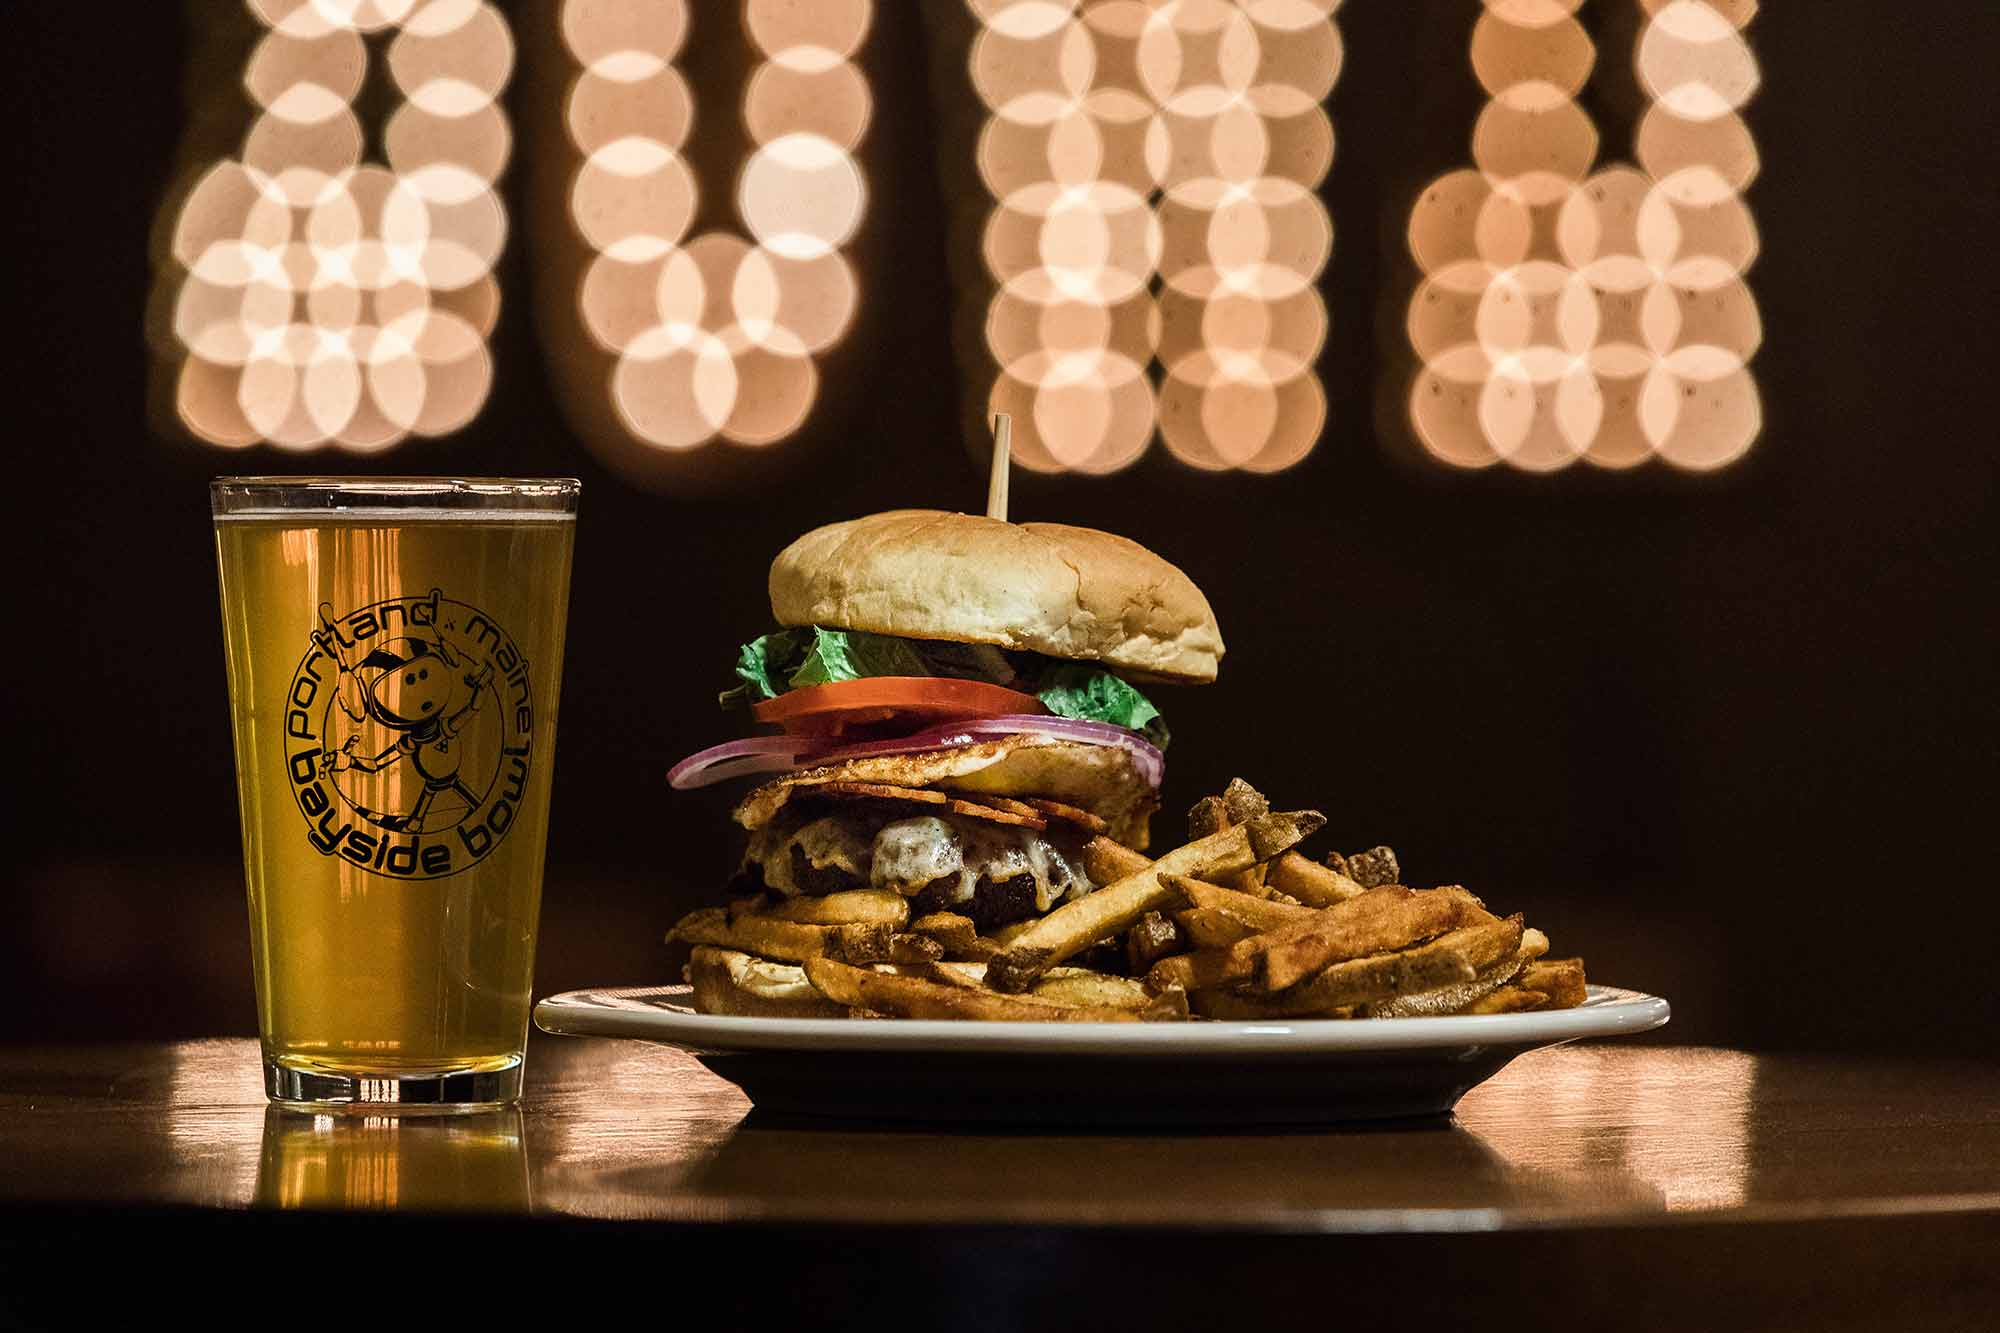 Burger and a beer with Bayside Bowl logo on glass